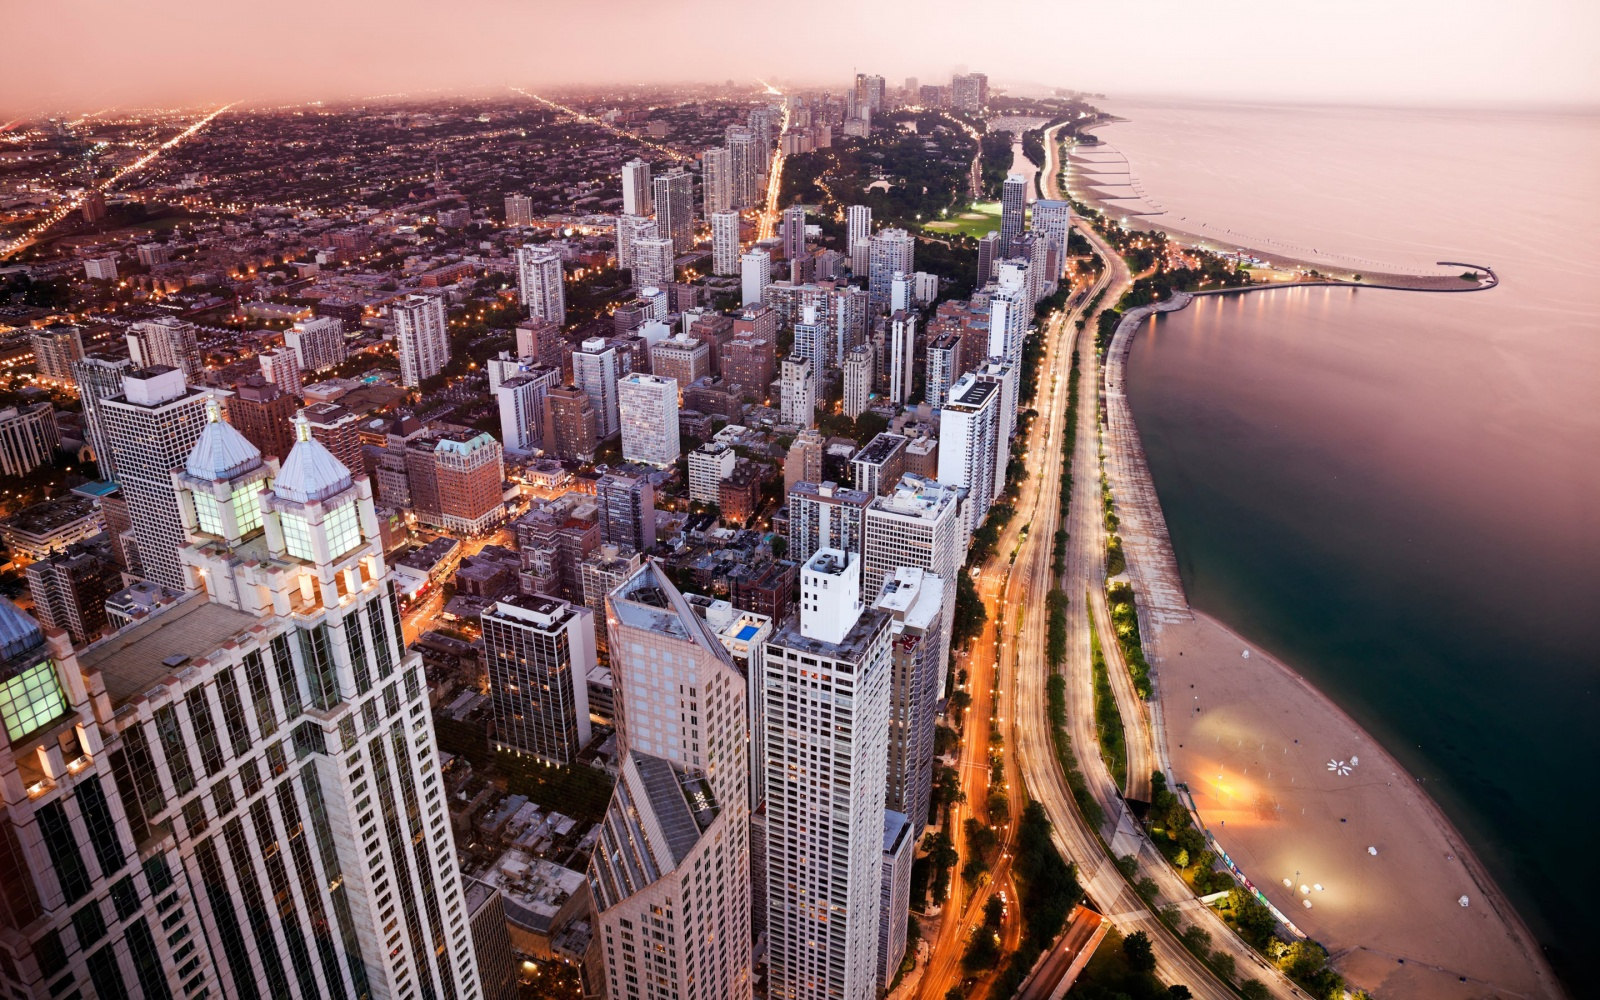 aerial of Chicago at dusk